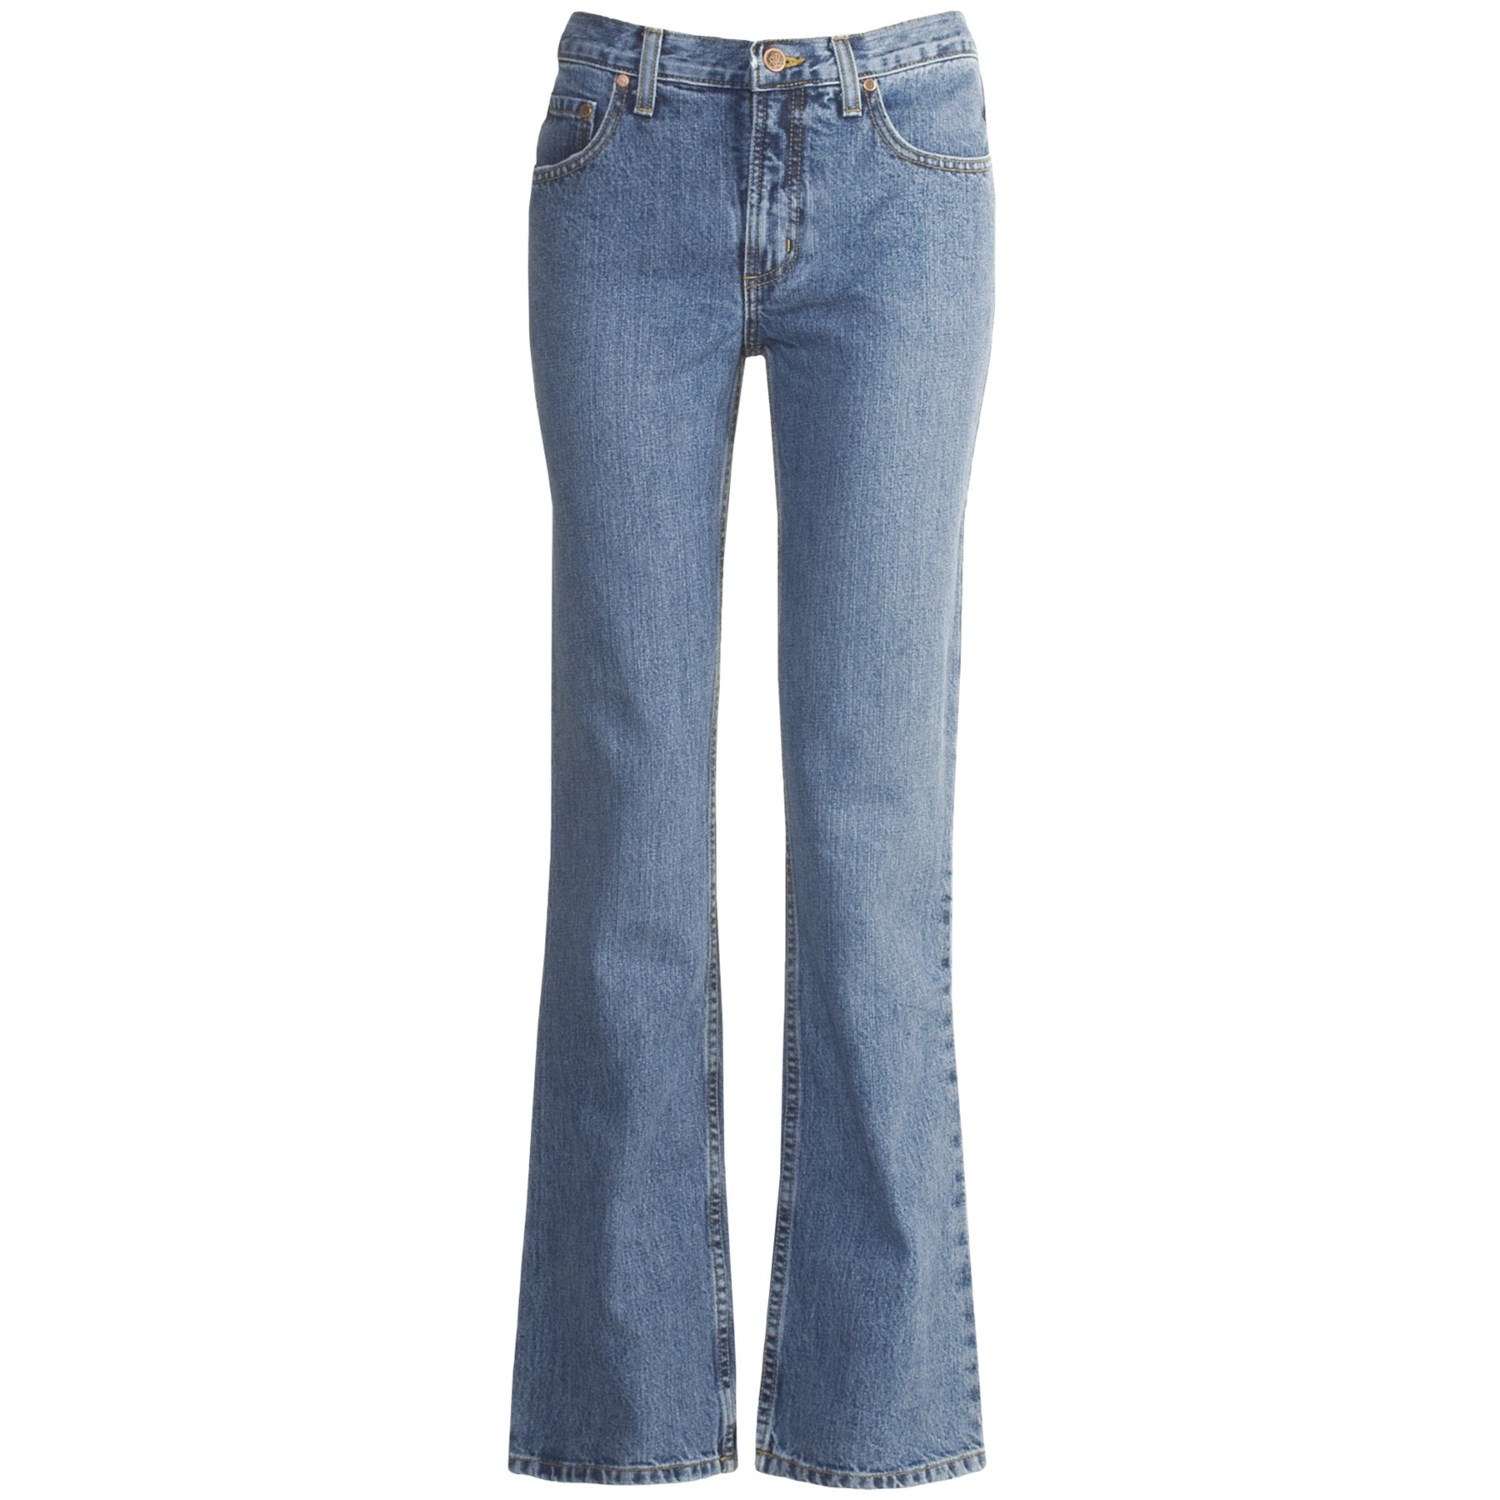 Cruel Girl Dakota Jeans Slim Fit Bootcut For Women